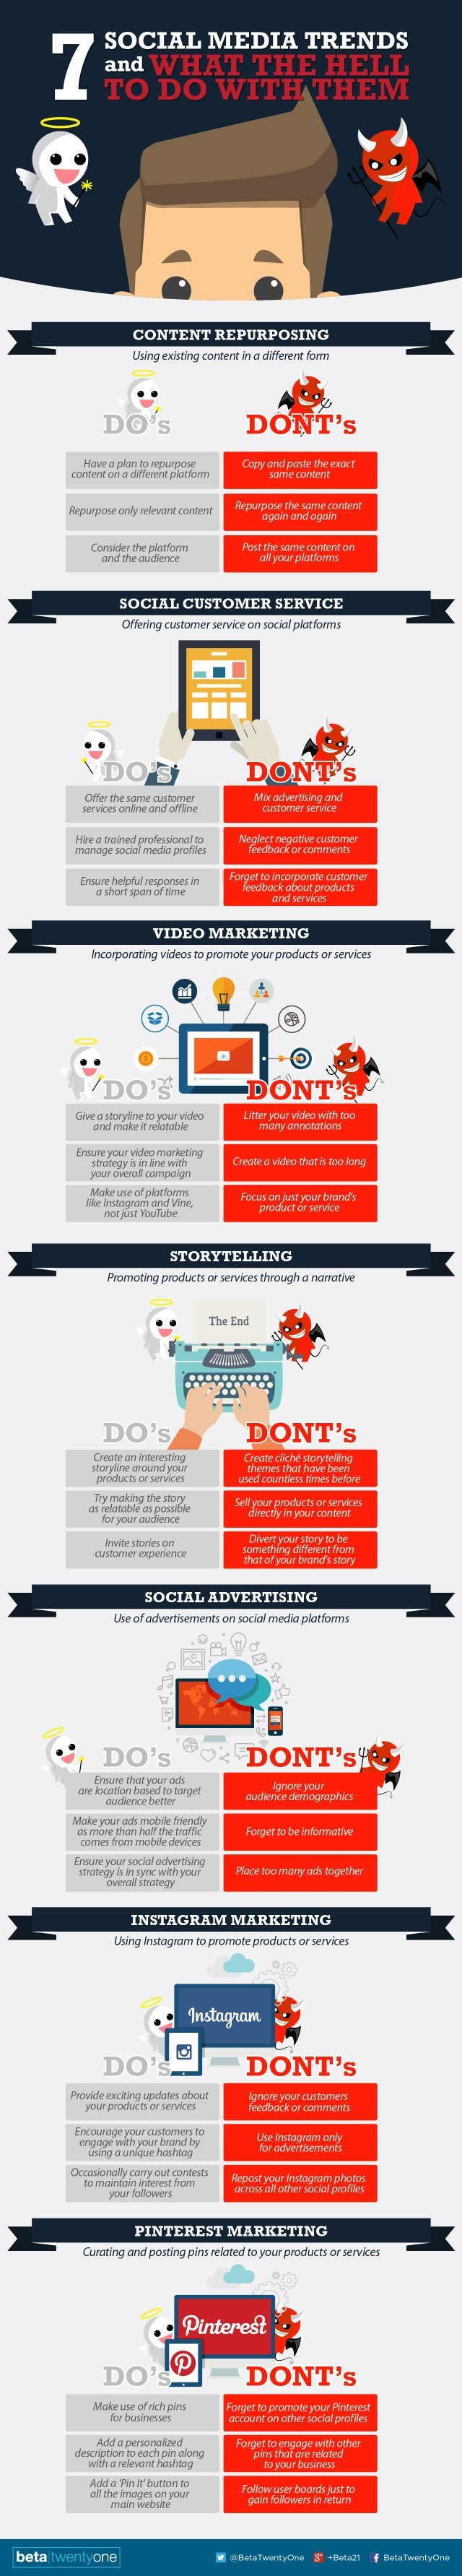 Social-Media-Trends-And-What-The-Hell-To-Do-With-Them-01-640x3566